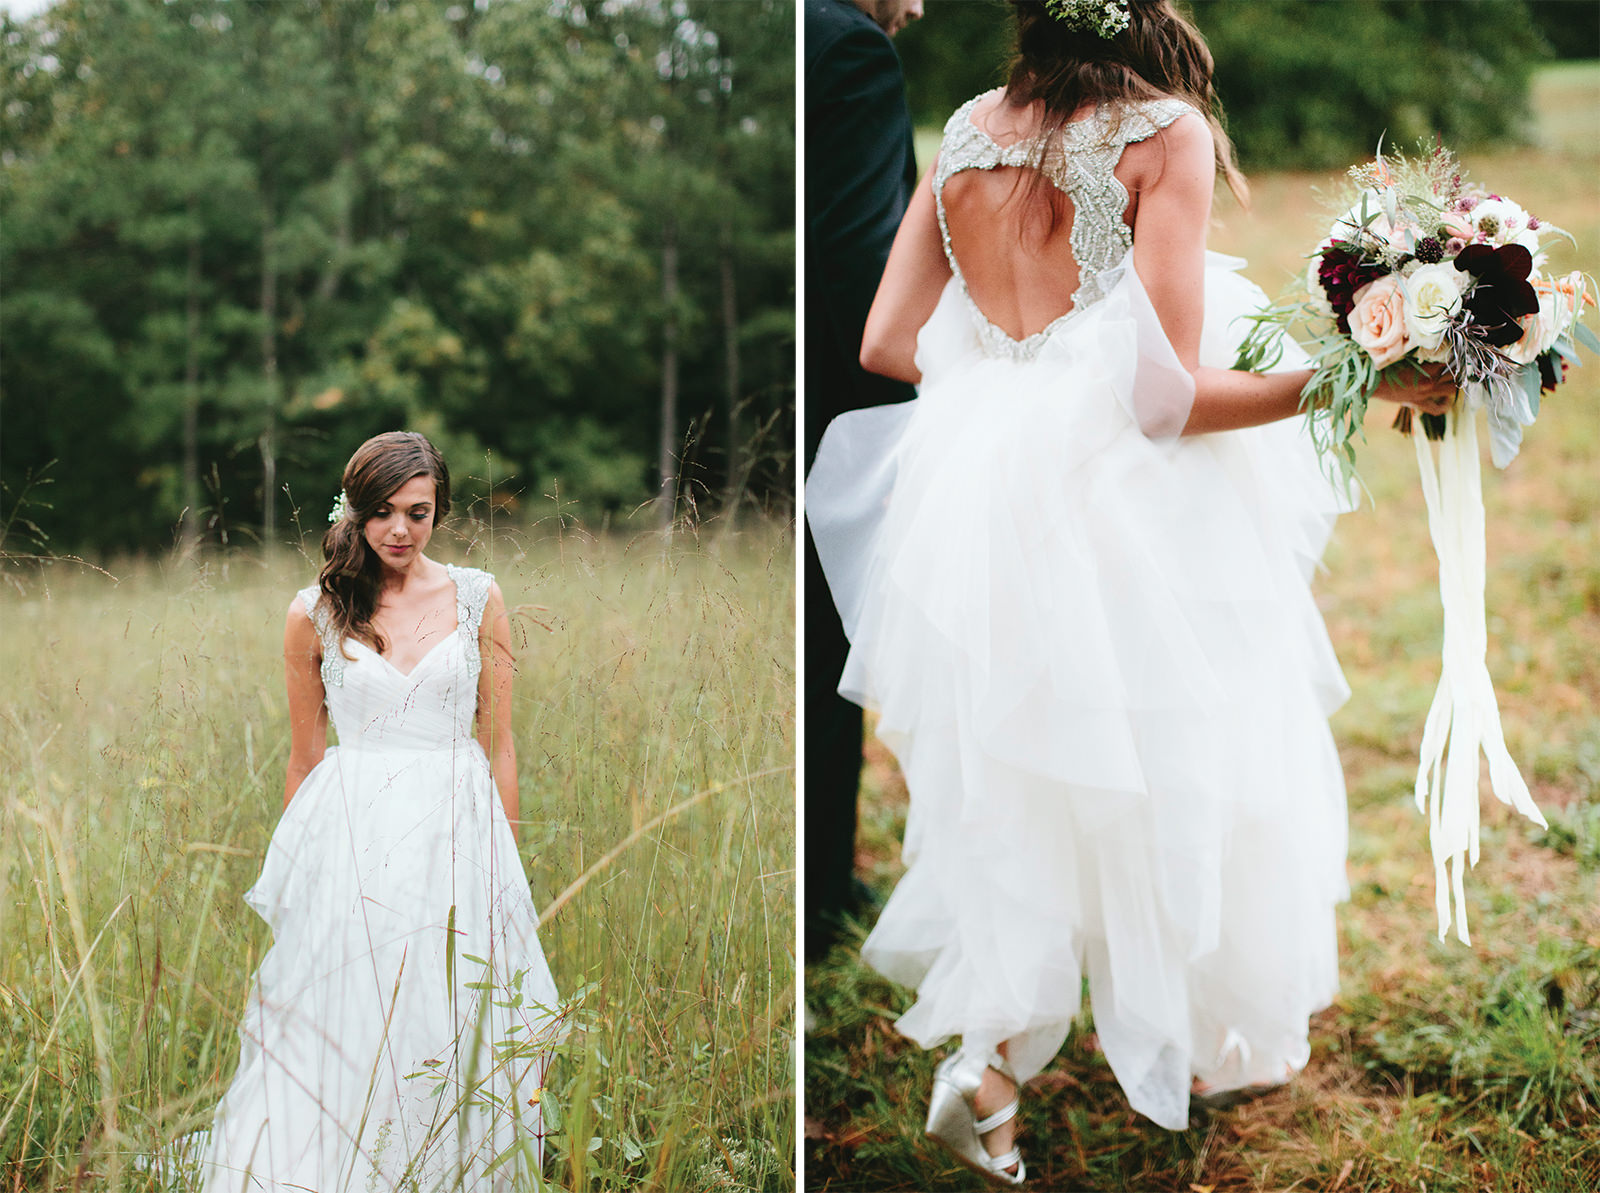 haley paige wedding dress